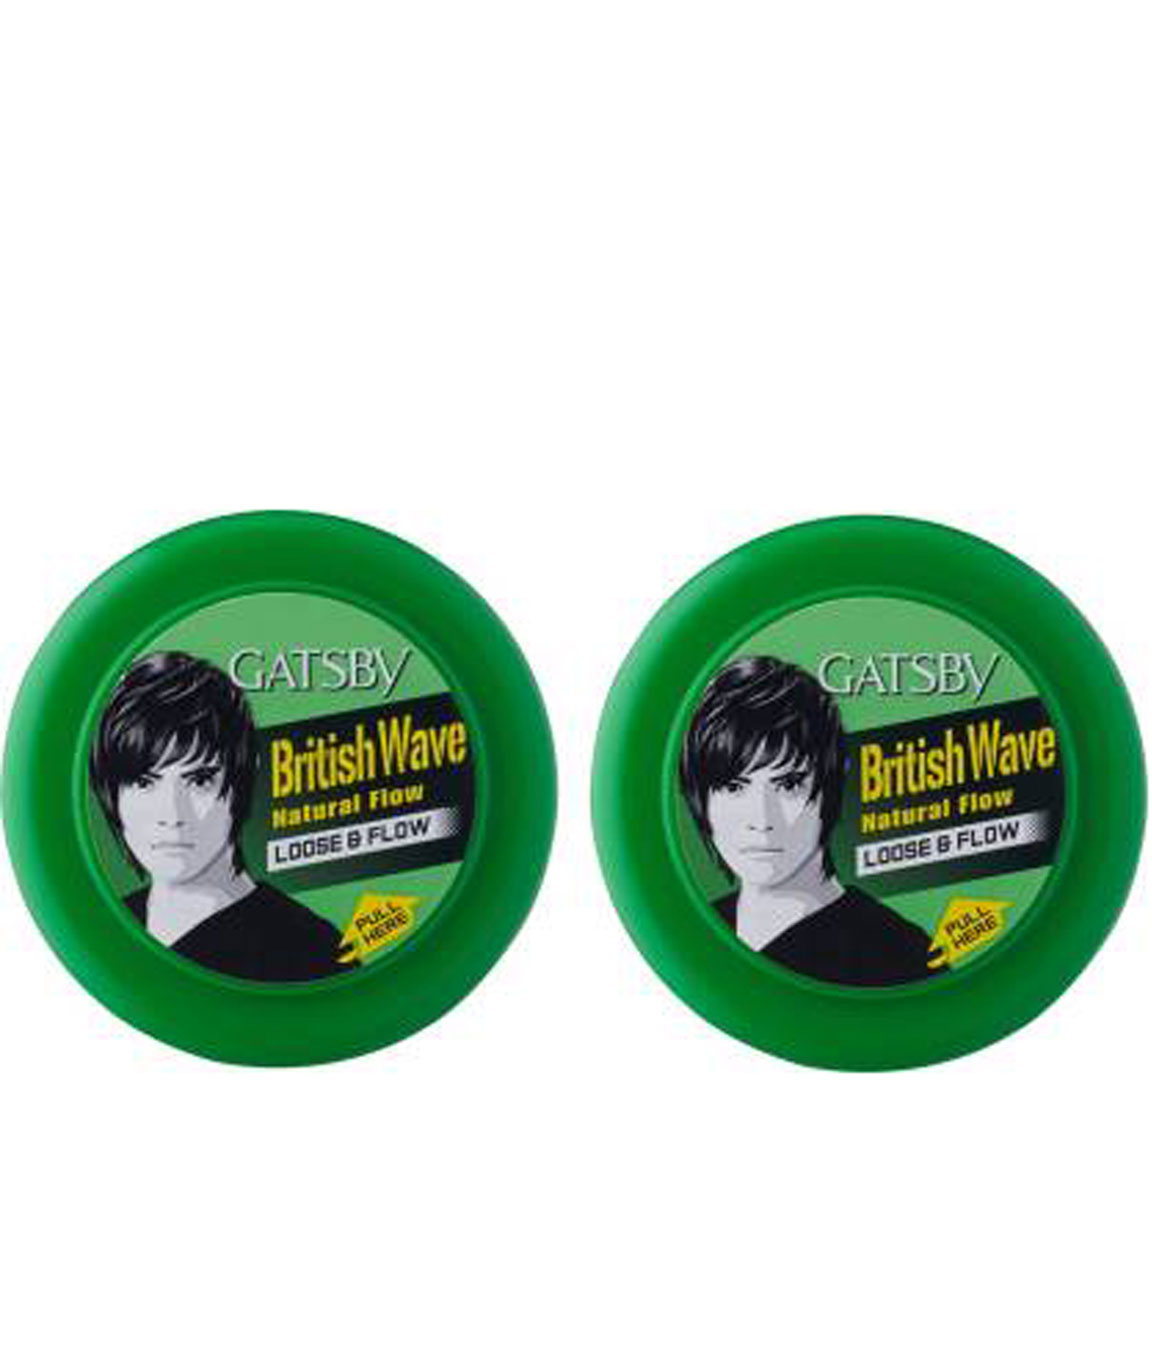 GATSBY HAIR STYLING WAX LOOSE & FLOW 75G (PACK OF 2) WAX (150 G)